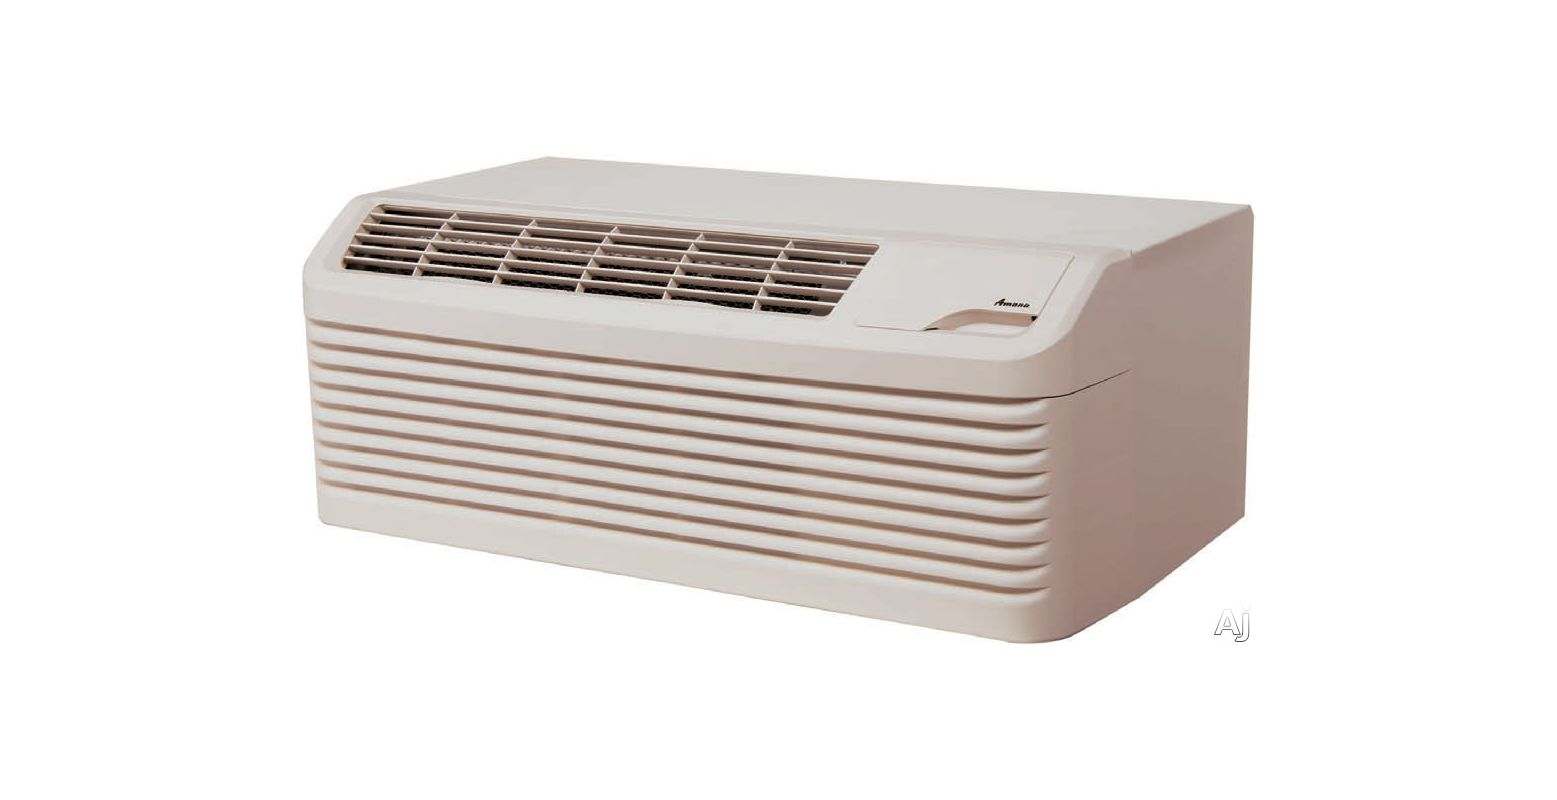 Amana PTH123G35AXXX 12,000 BTU Packaged Terminal Air Conditioner with 11500 BTU photo